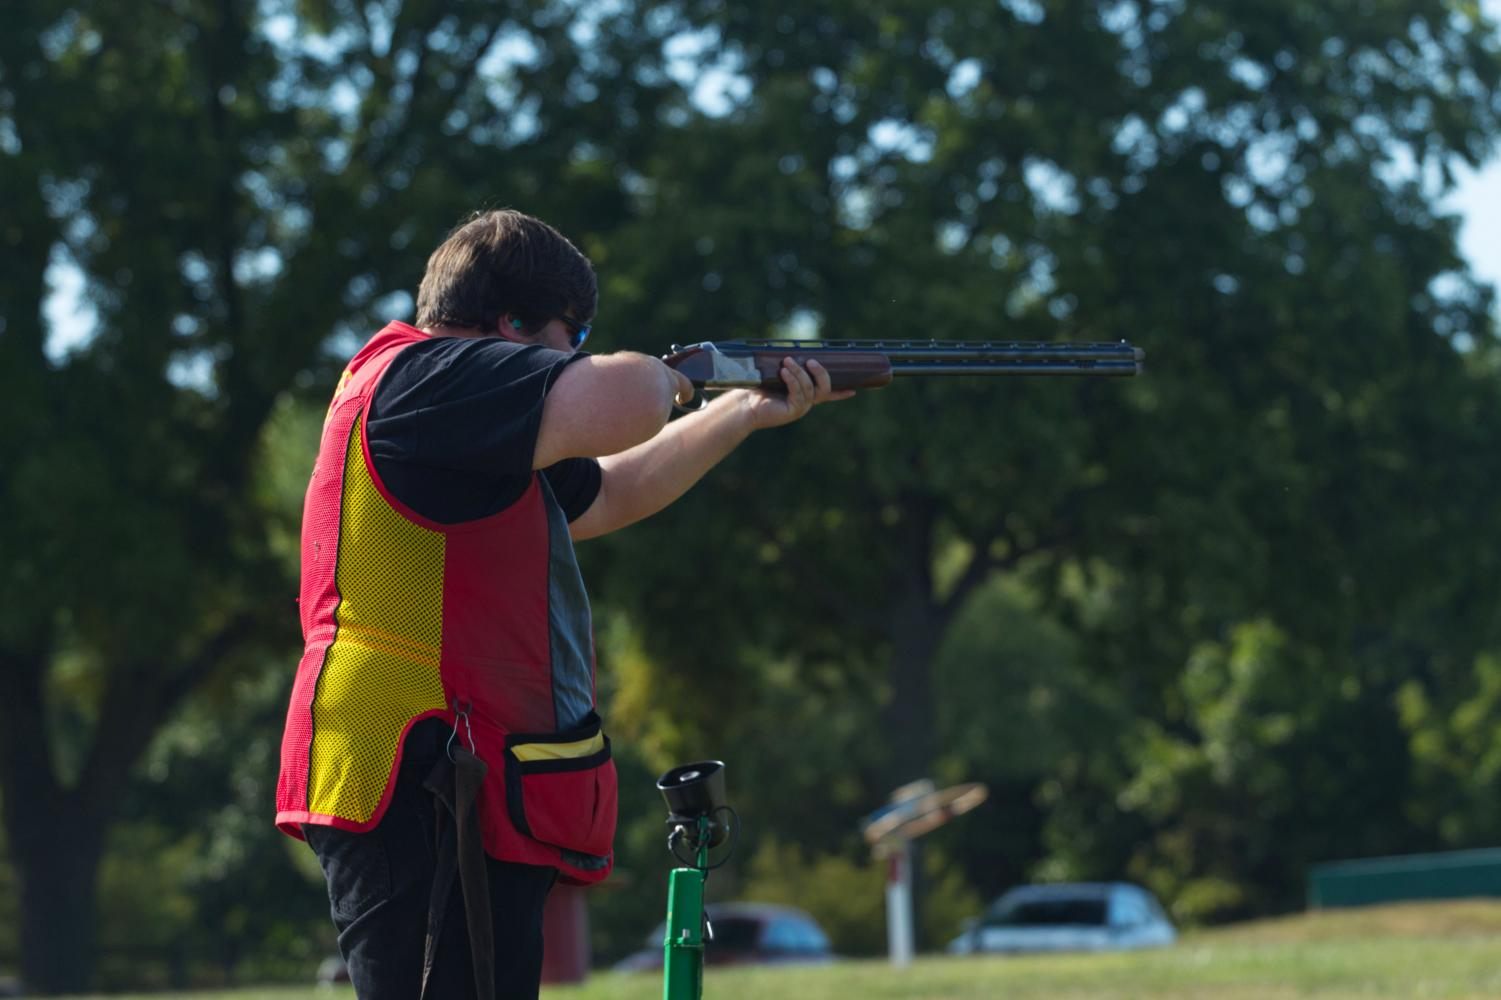 Kyle Myers practices his aim.